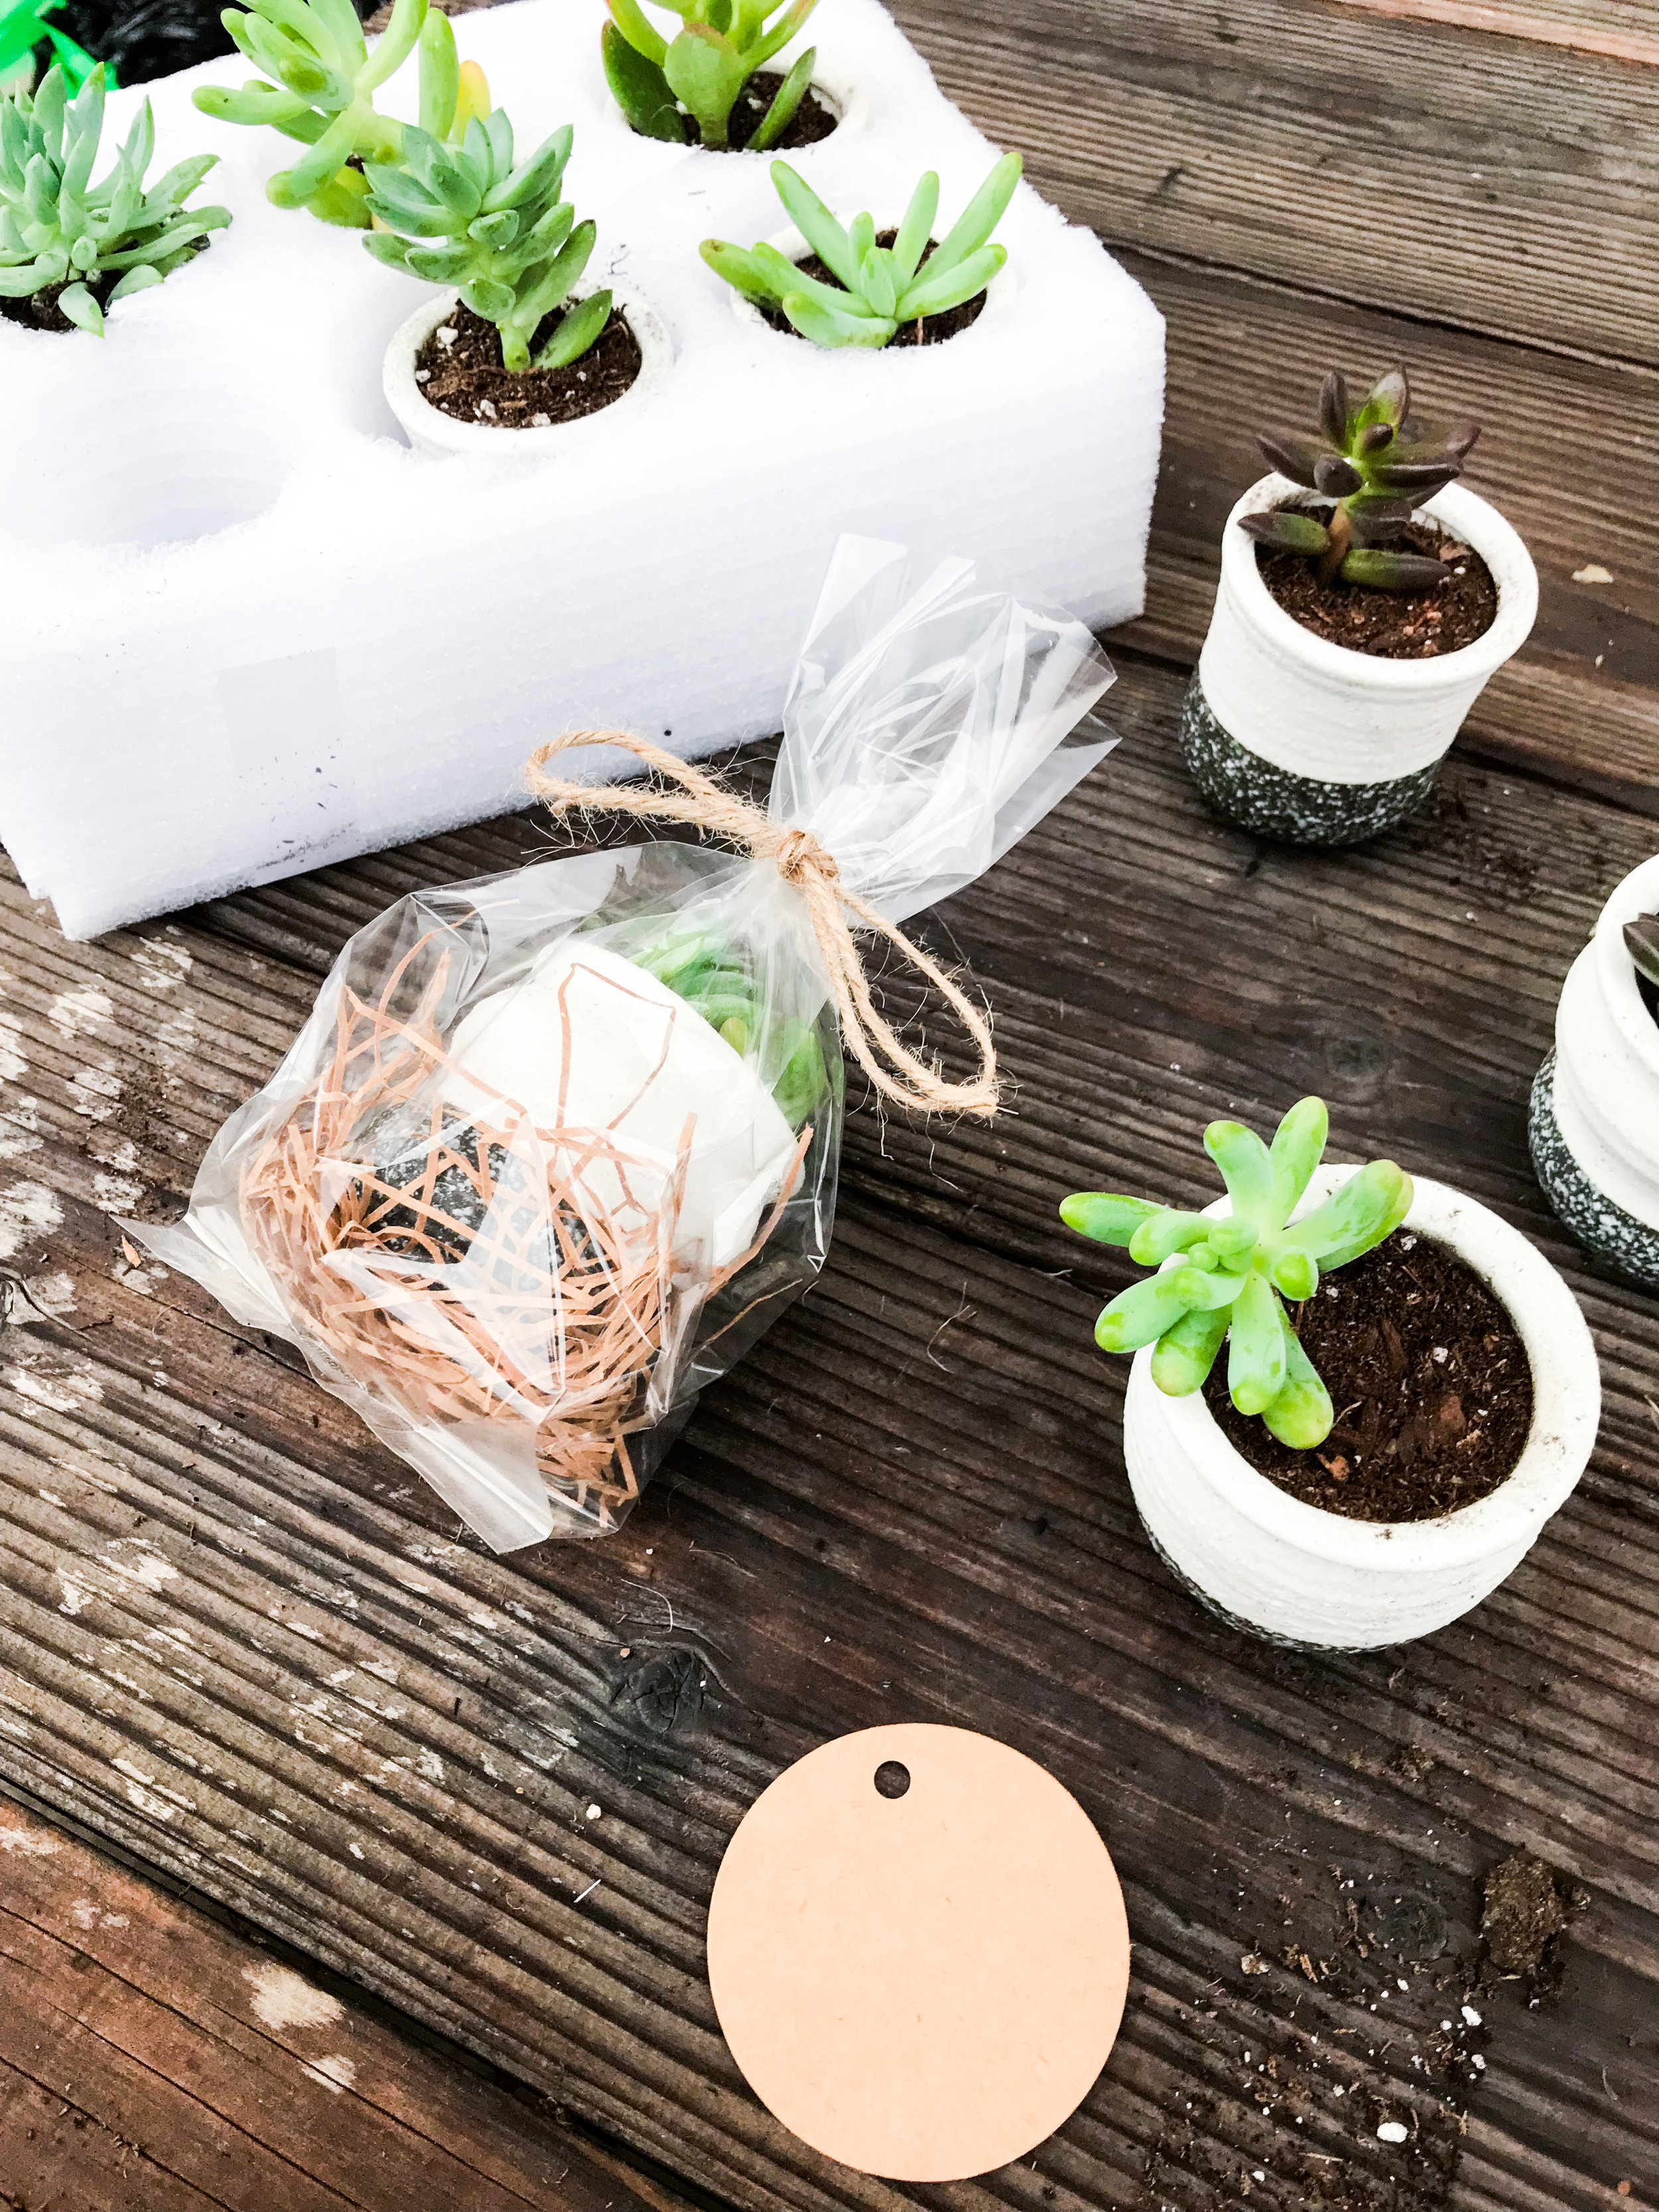 Bulk Farewell Gifts for Coworkers: DIY